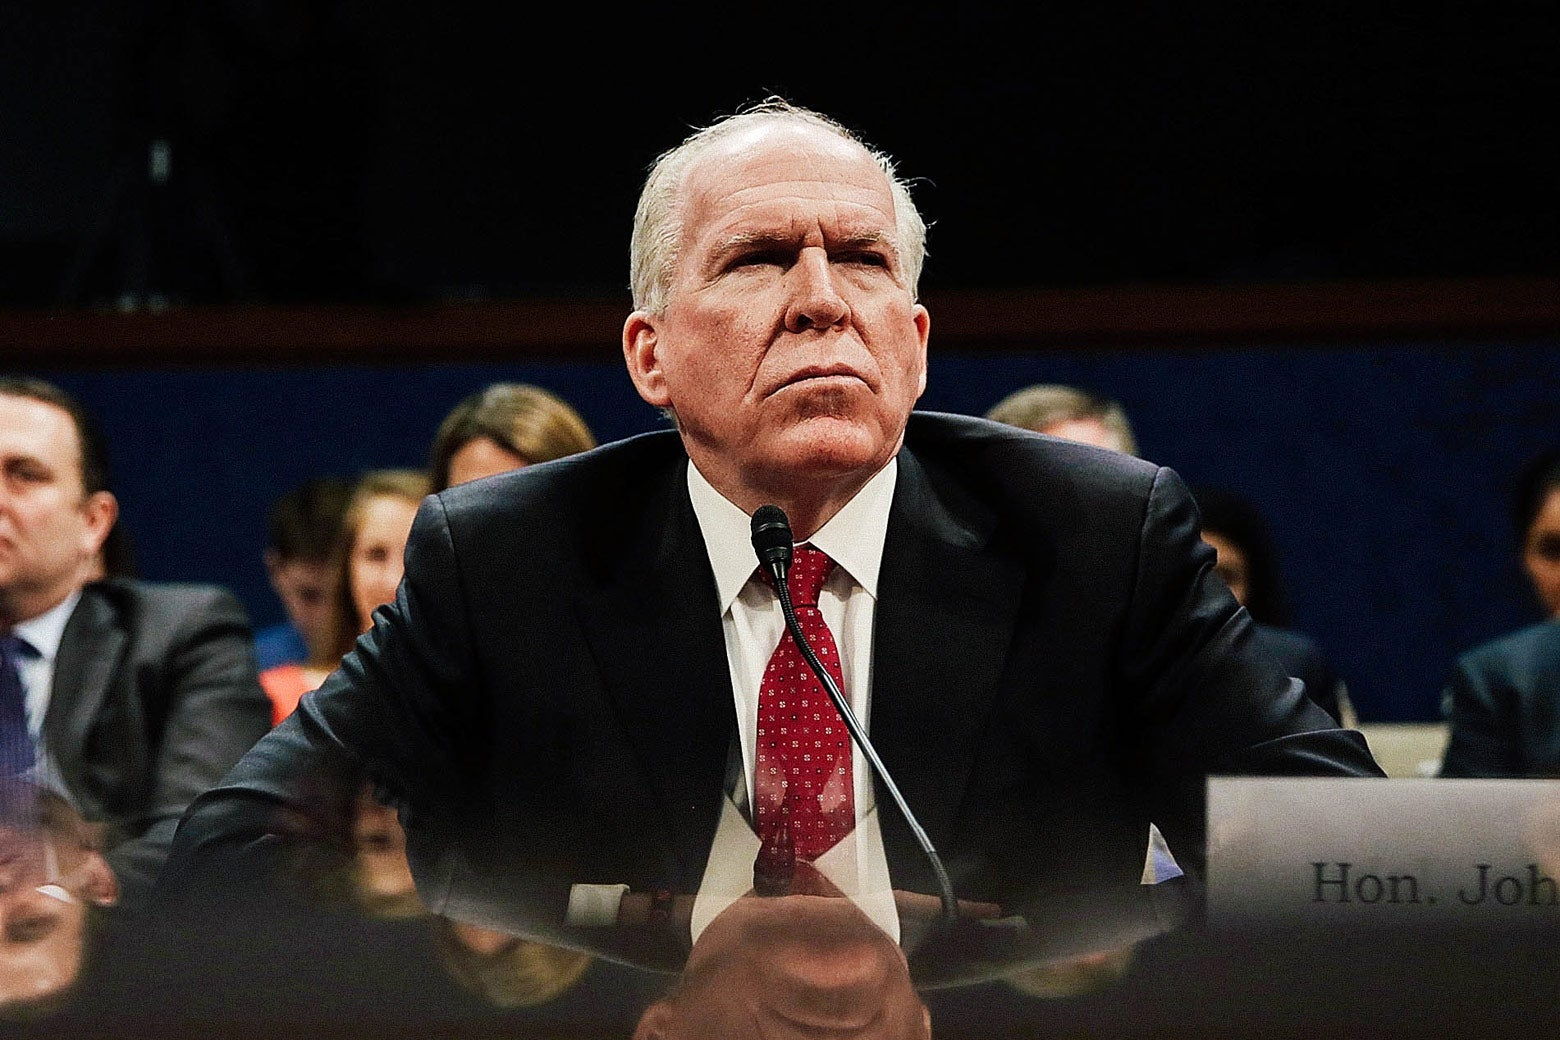 Former CIA Director John Brennan testifies before the House Permanent Select Committee on Intelligence on Capitol Hill on May 23, 2017.